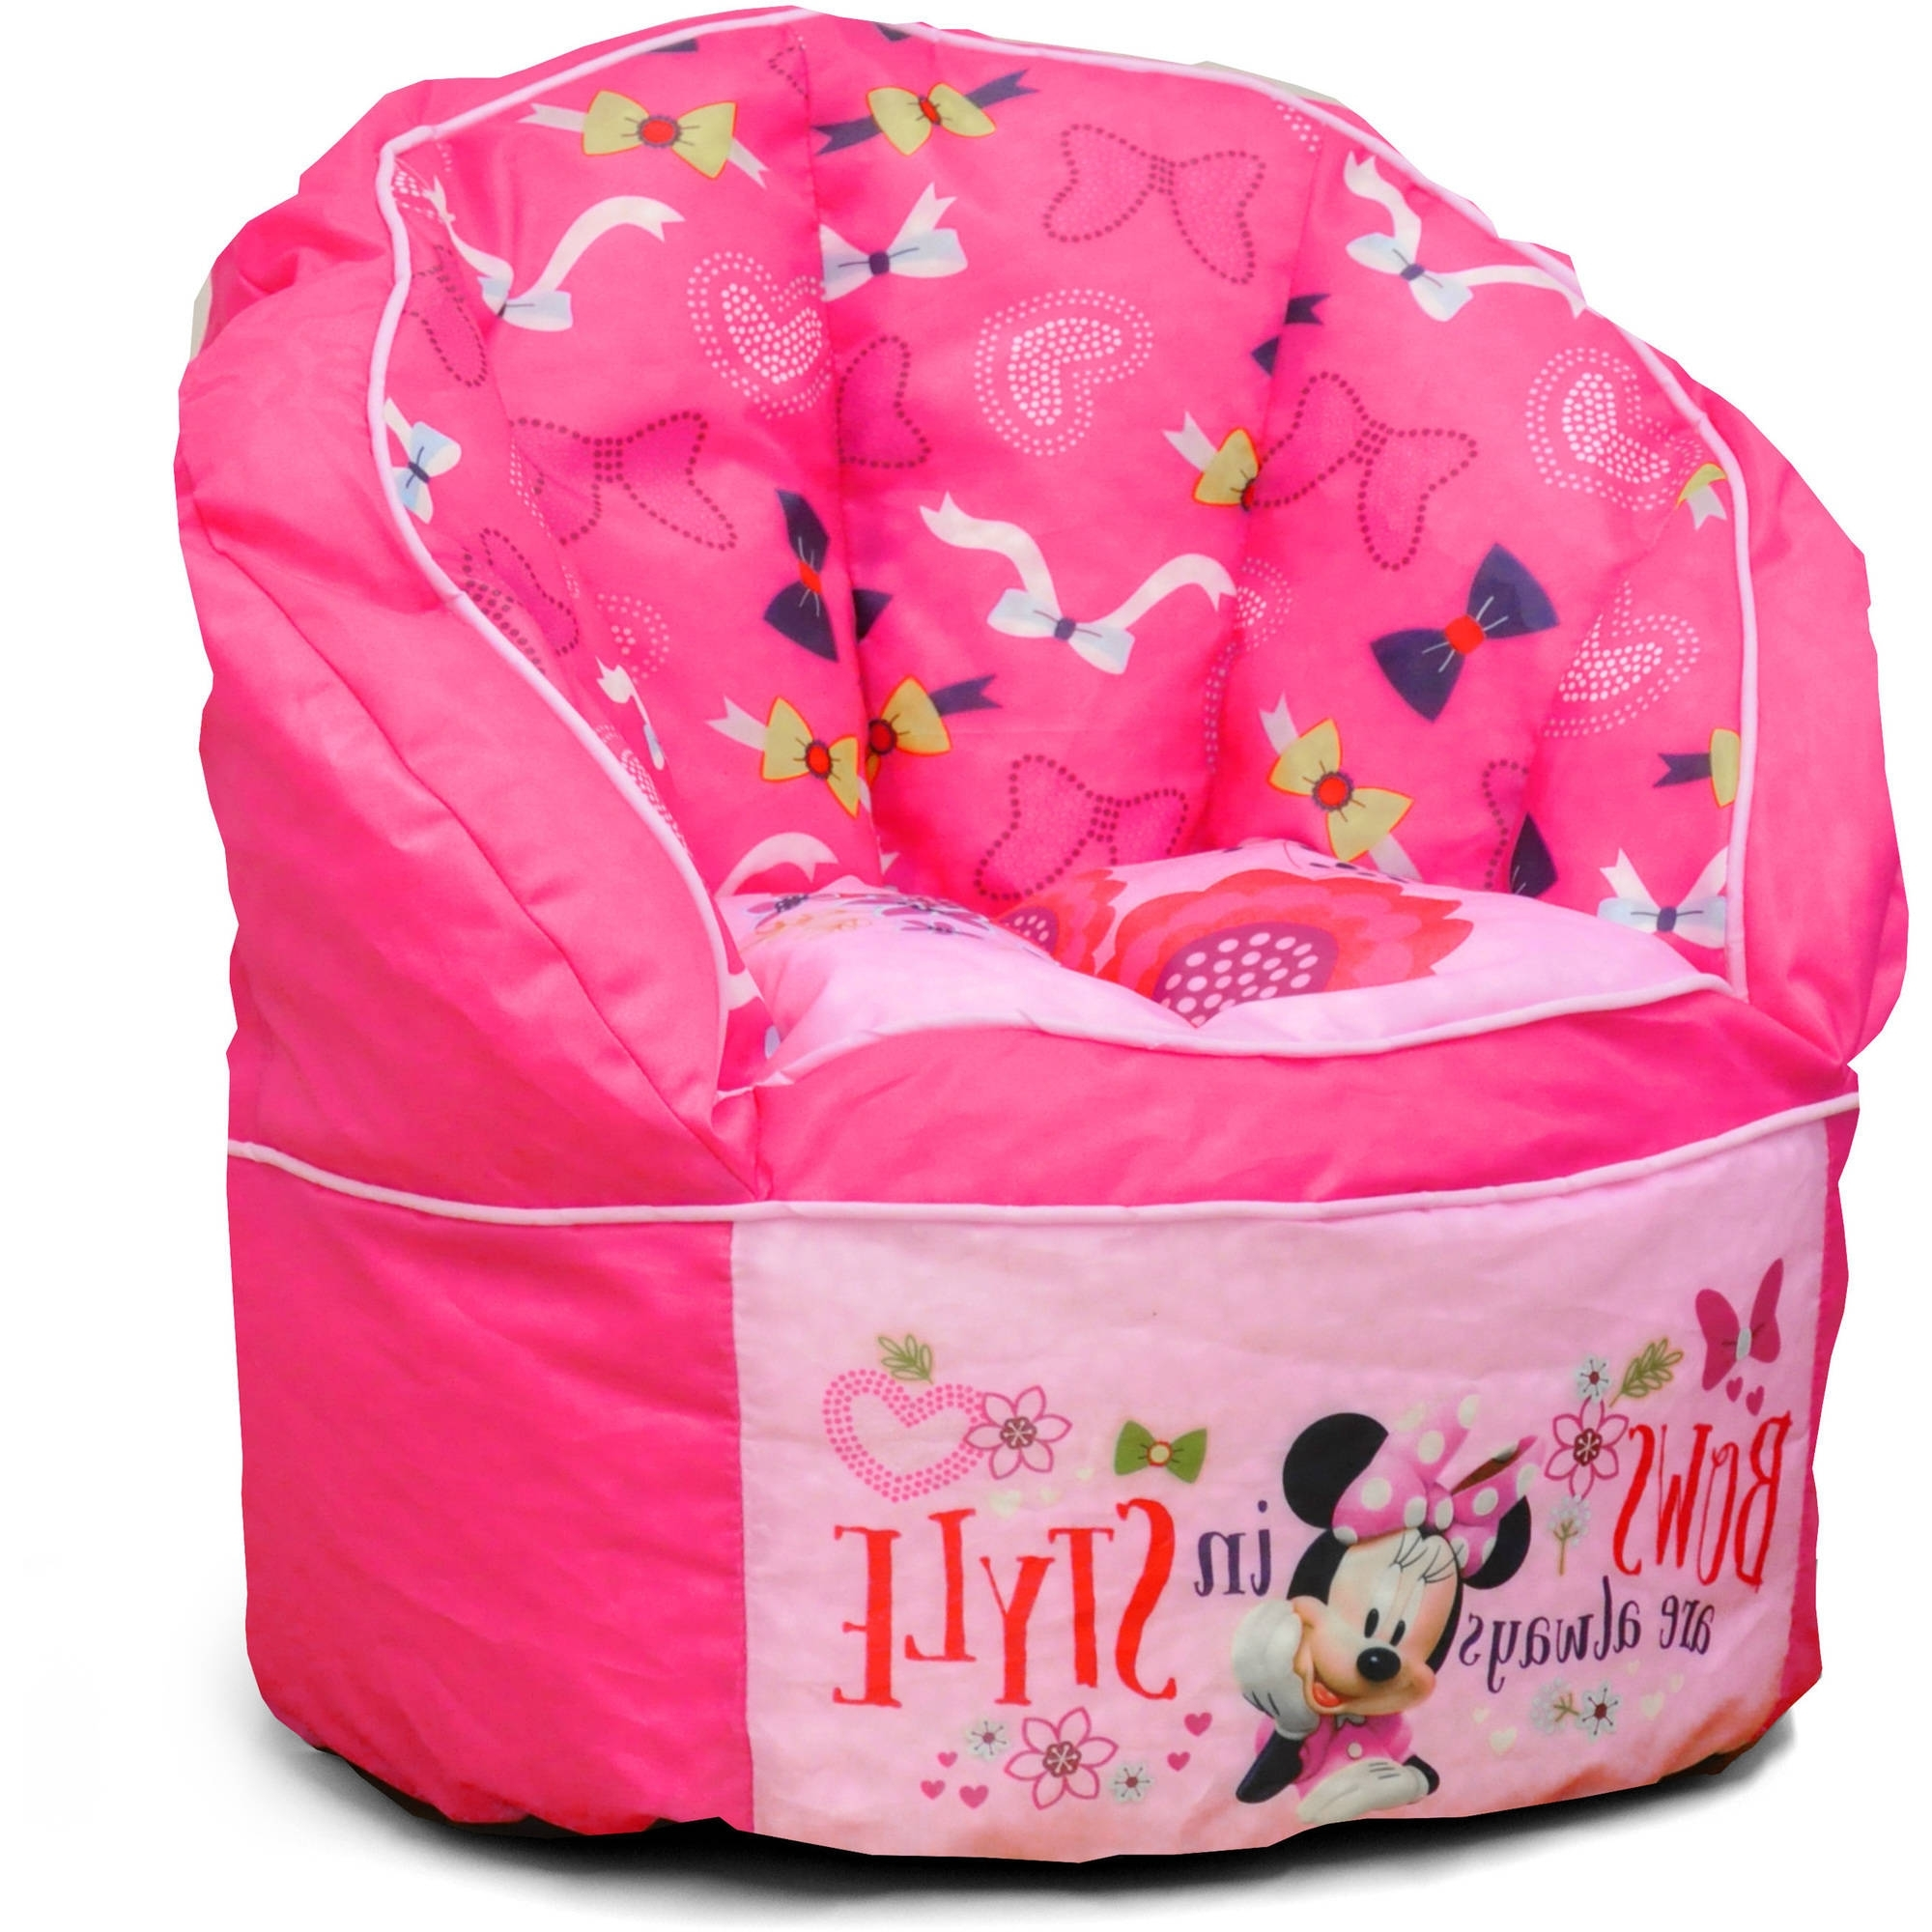 Well Known Disney Minnie Mouse Sofa Bean Chair With Piping – Walmart Intended For Disney Sofa Chairs (View 18 of 20)